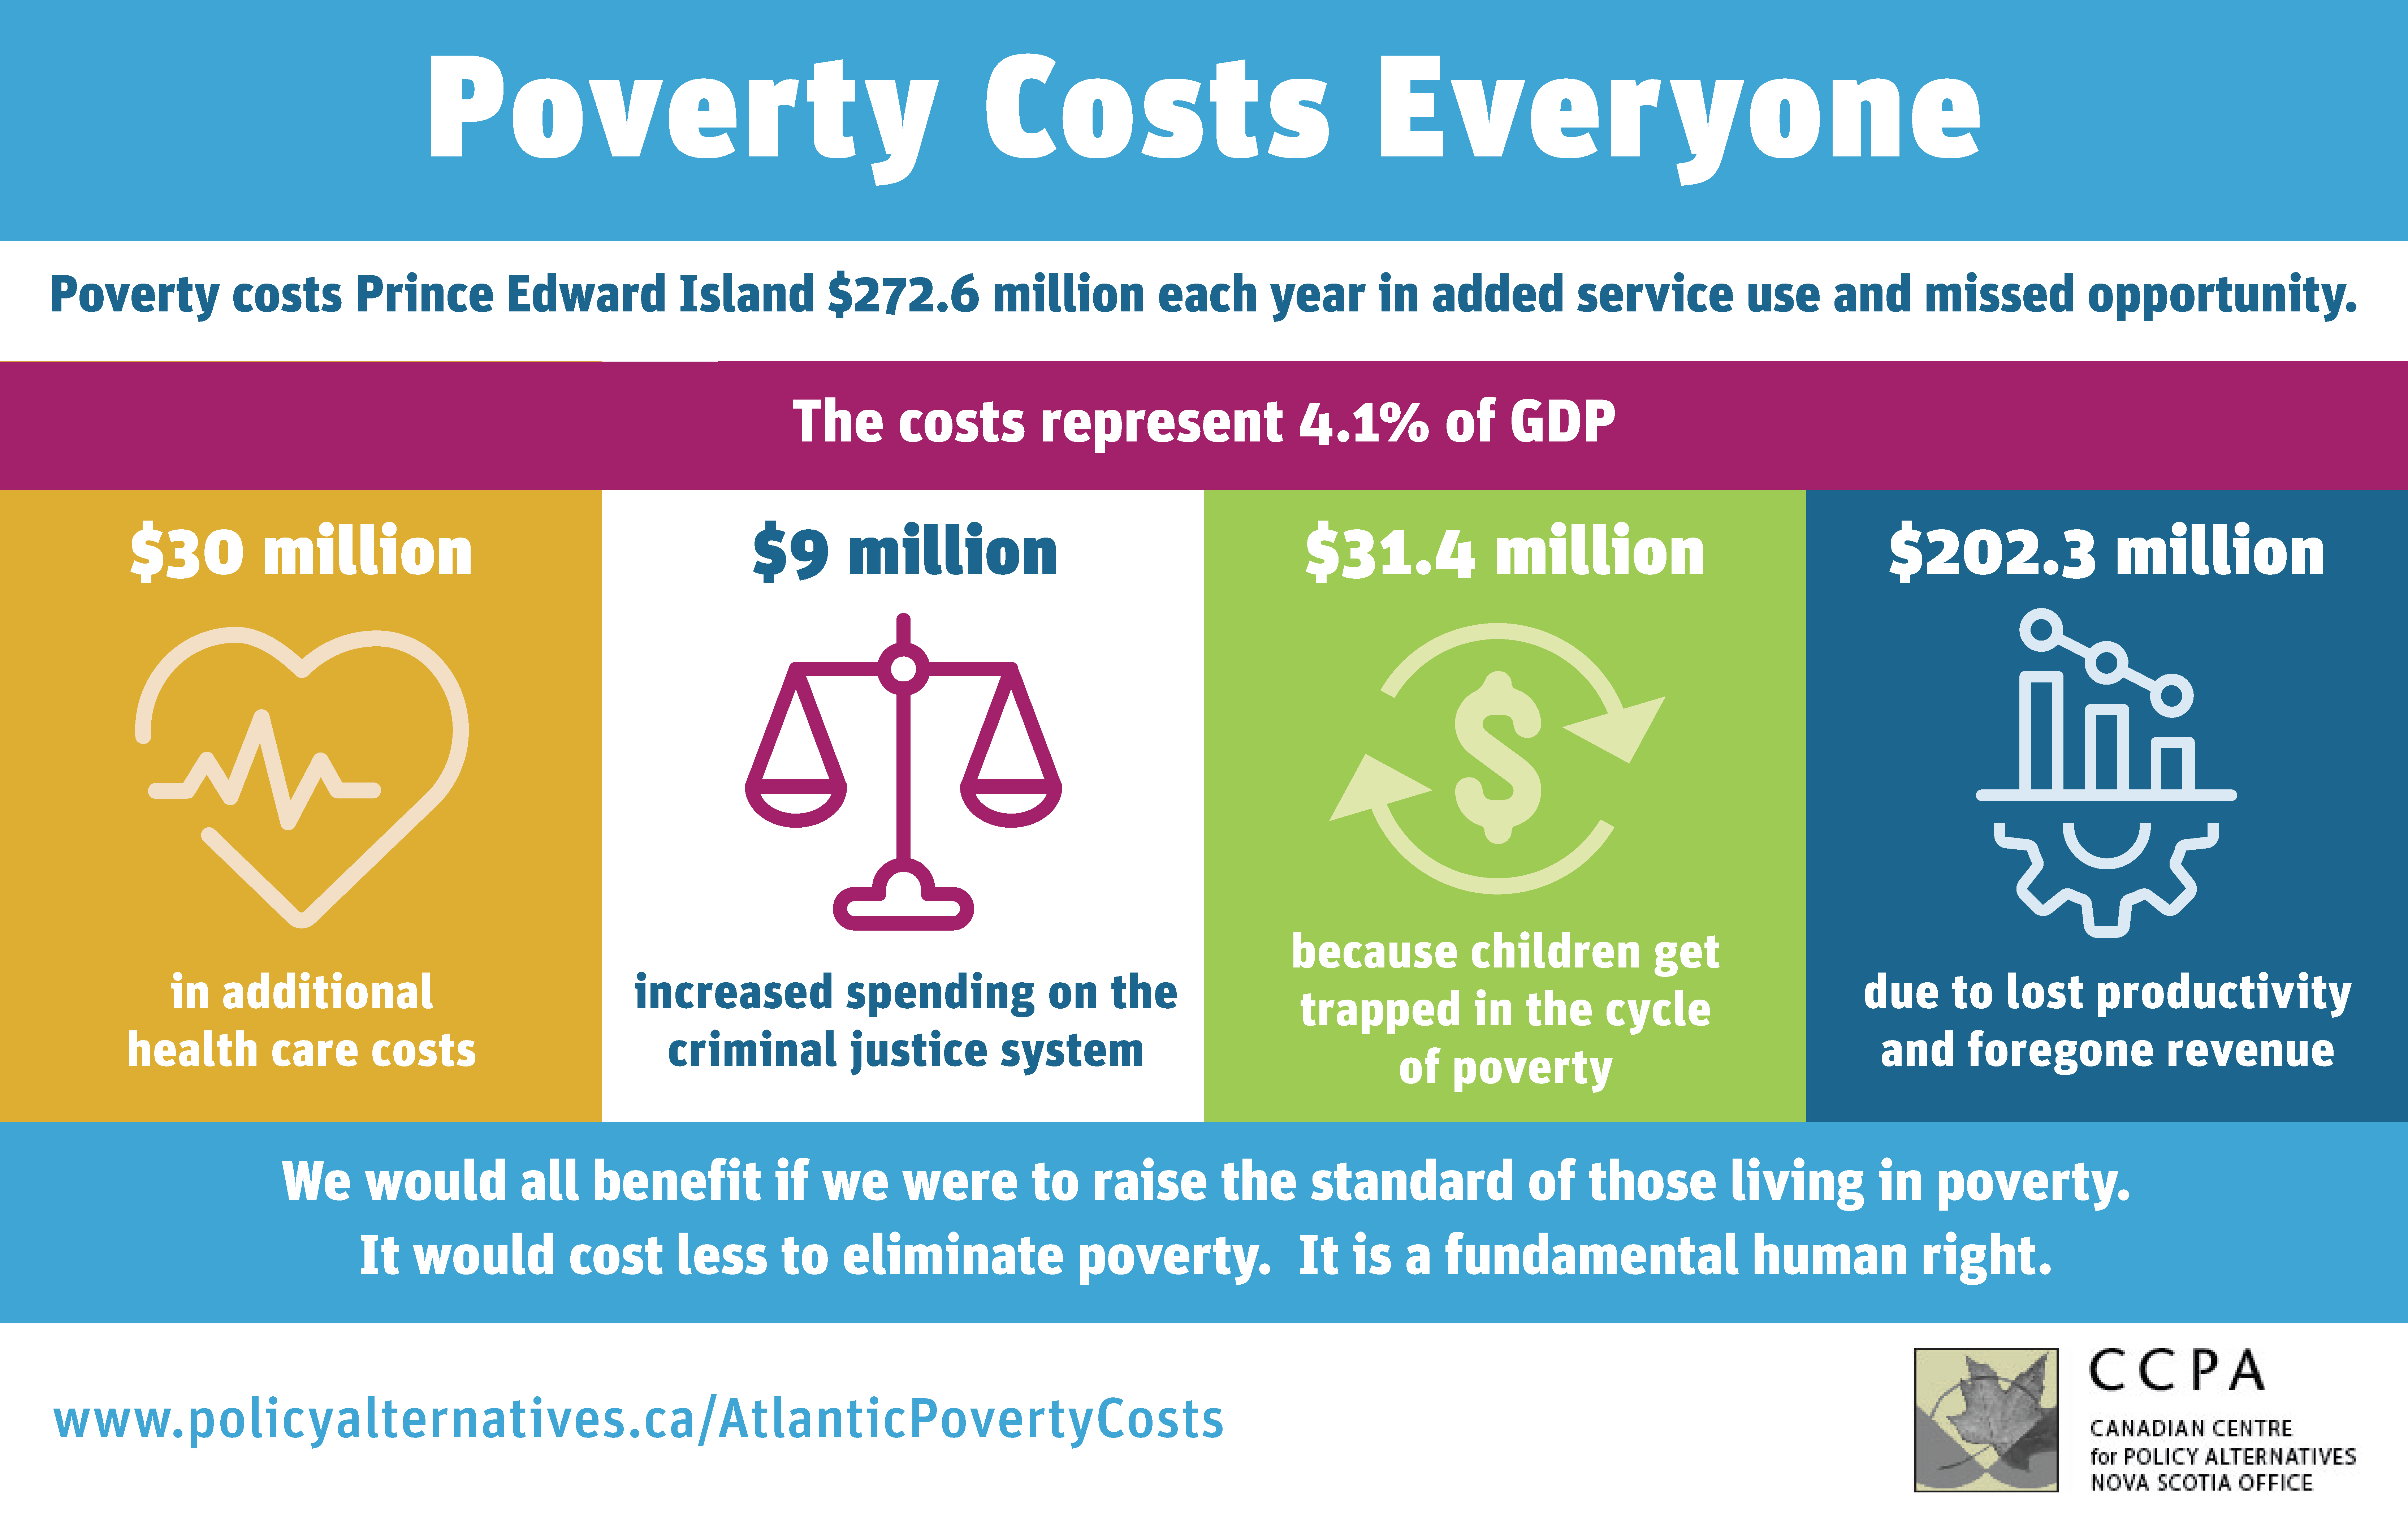 A Graphic showing poverty costs in Prince Edward Island in 2021.